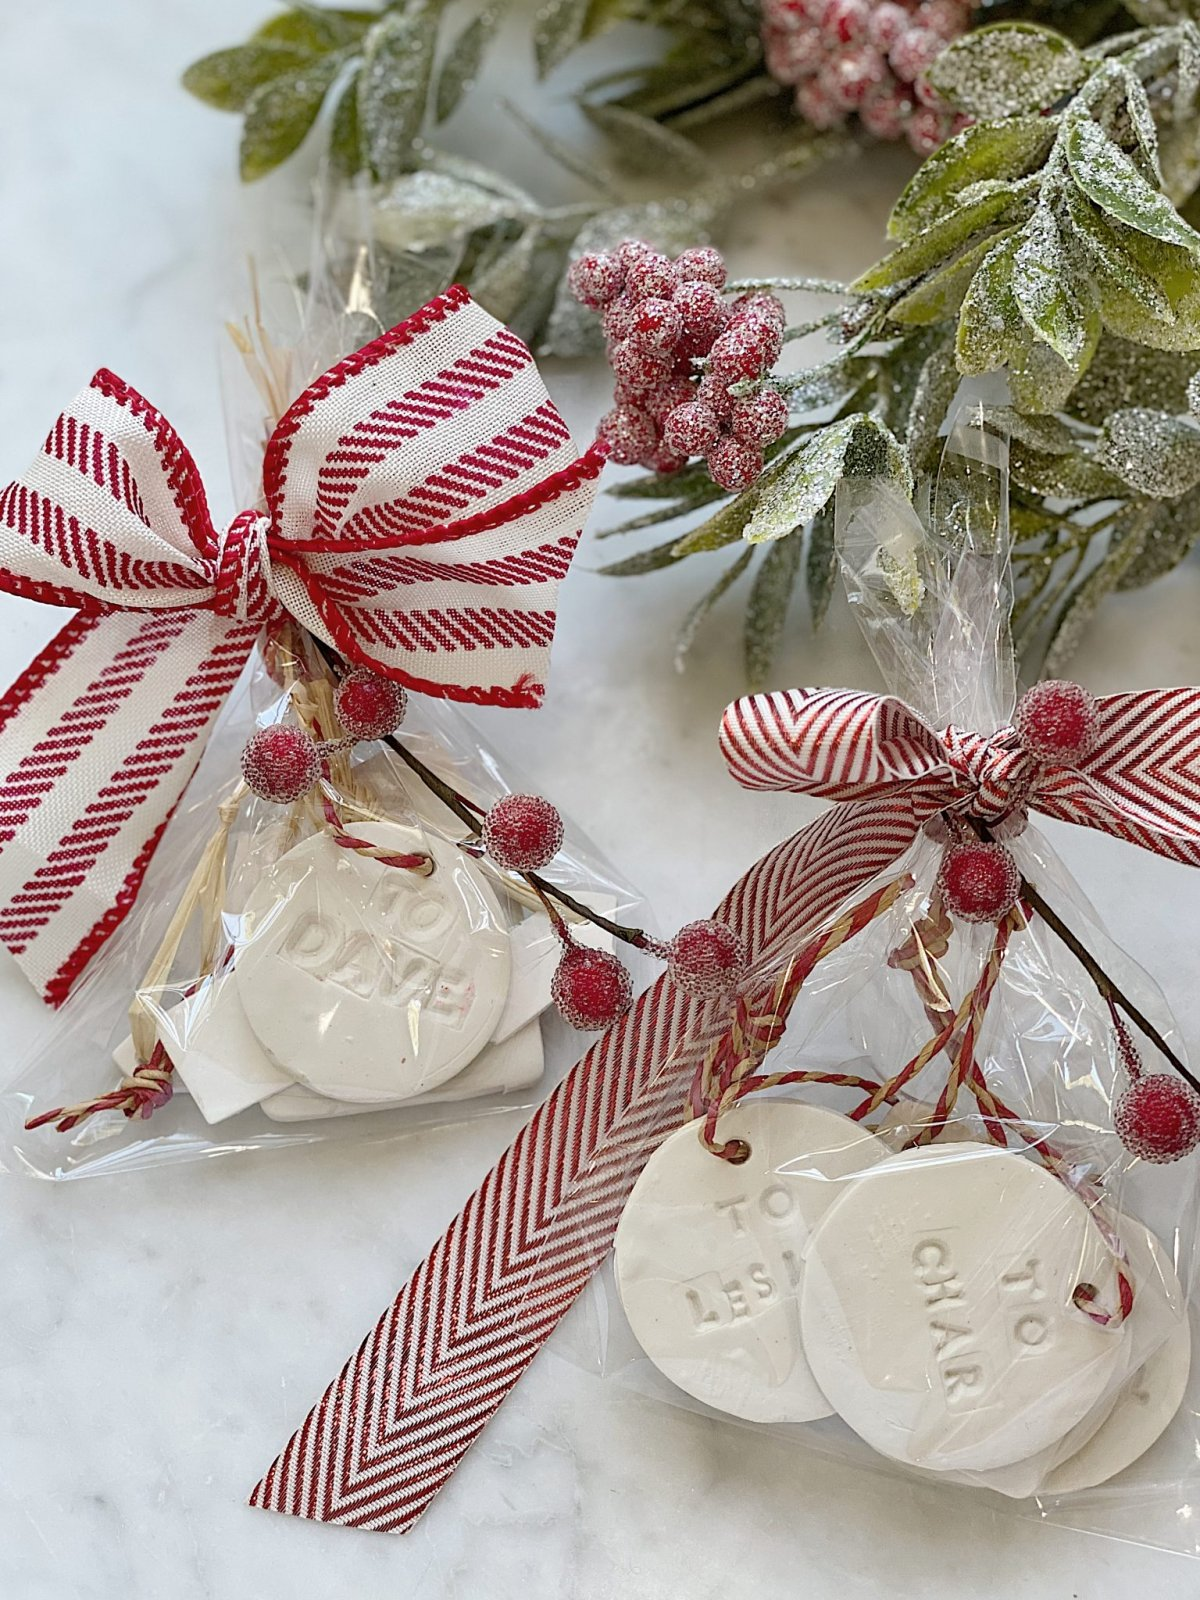 Today I am sharing one of my favorite homemade gifts. These DIY Christmas gift tags are easy to make, personalized, and very versatile.